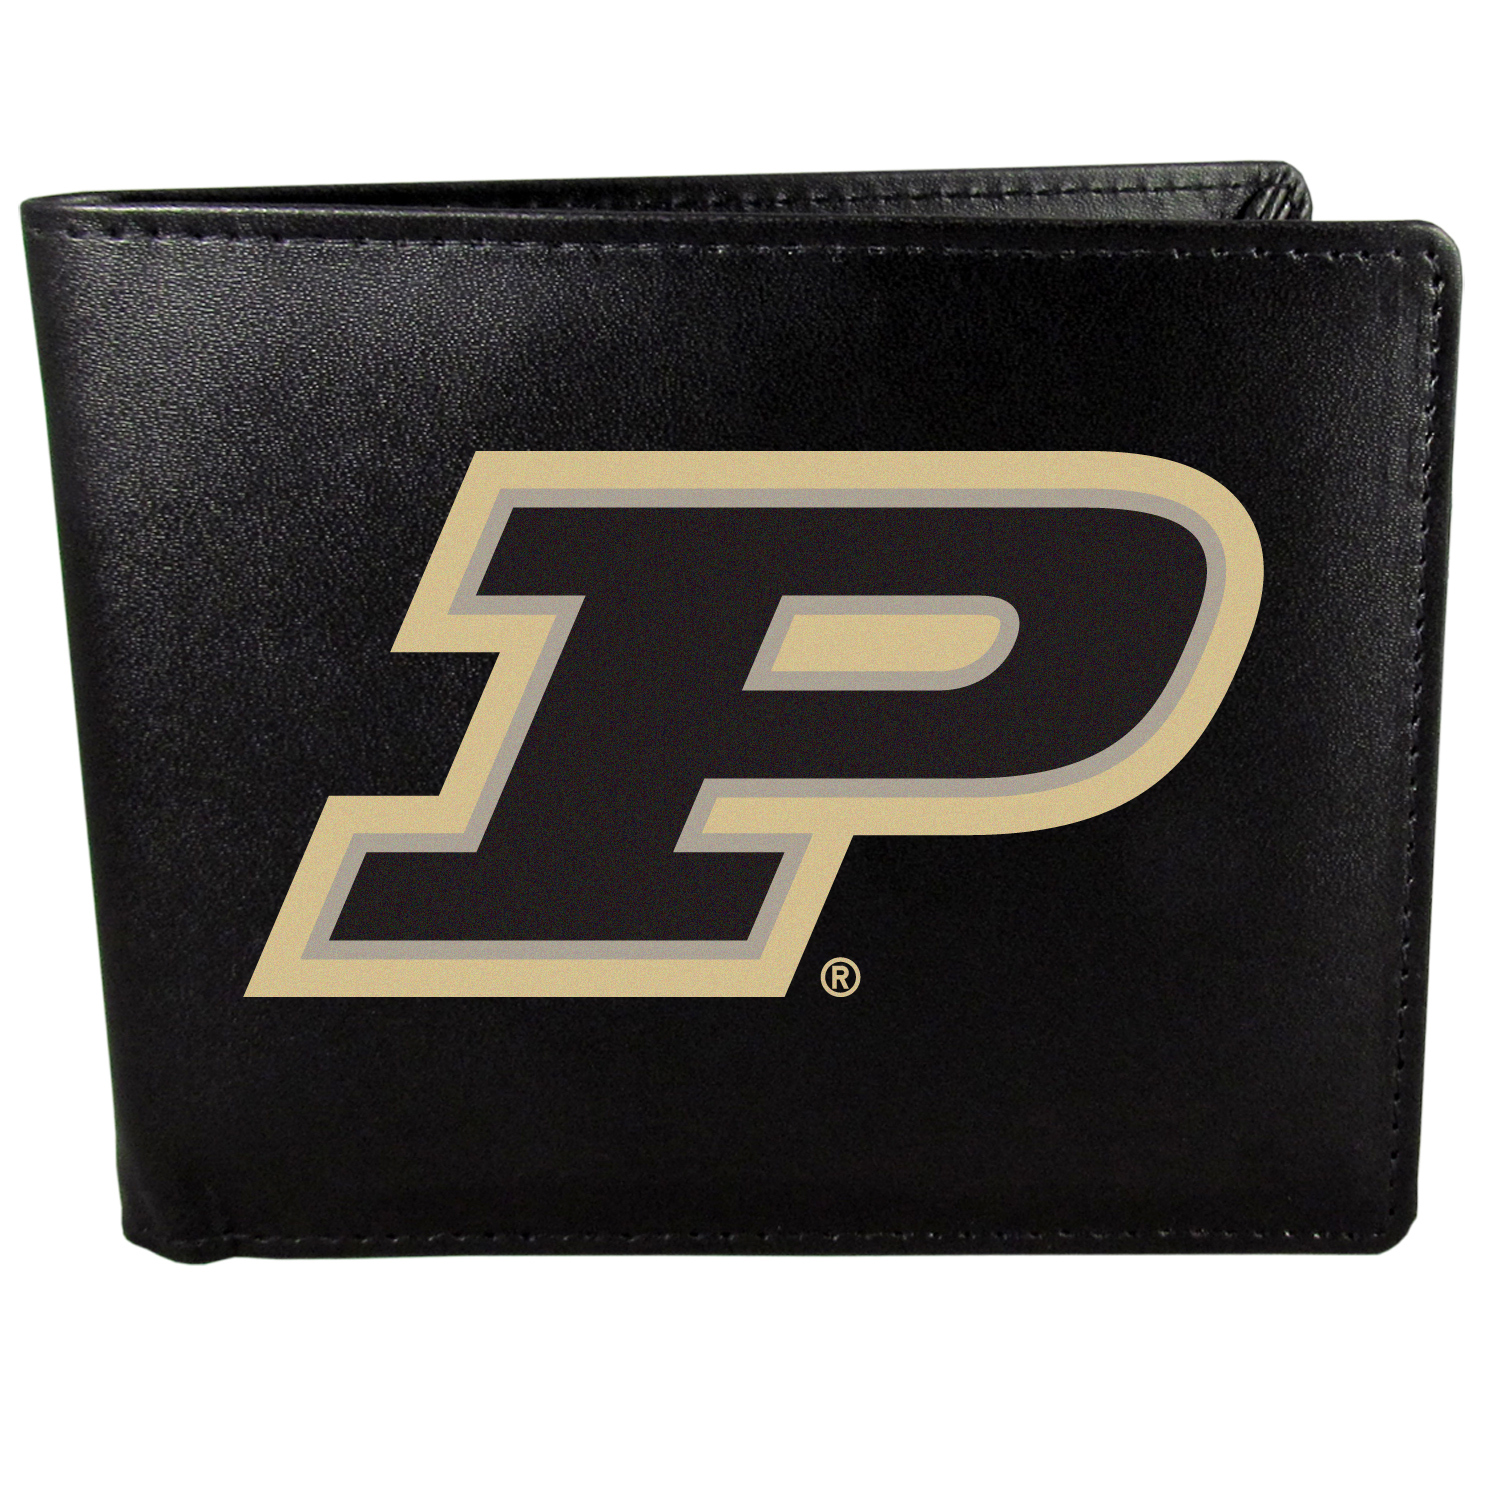 Purdue Boilermakers Bi-fold Wallet Large Logo - Sports fans do not have to sacrifice style with this classic bi-fold wallet that sports the Purdue Boilermakers extra large logo. This men's fashion accessory has a leather grain look and expert craftmanship for a quality wallet at a great price. The wallet features inner credit card slots, windowed ID slot and a large billfold pocket. The front of the wallet features a printed team logo.